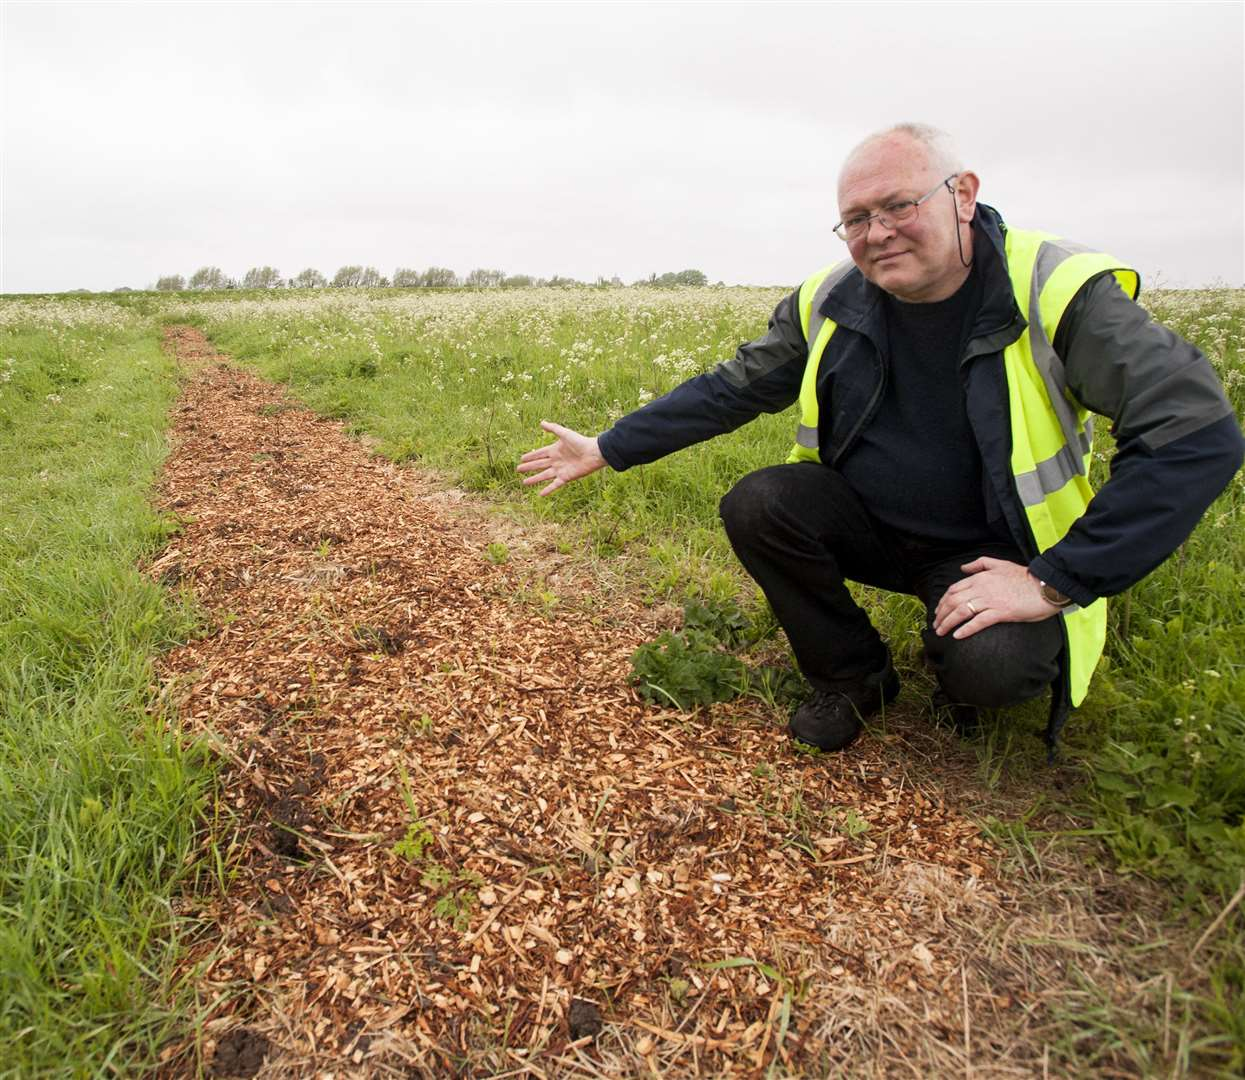 Around Three Hundred newly planted hedge plants have been ripped up and stolen from Hardings Pits King's Lynn. Pictured at the area is Rob Archer, Chairman of HPCA